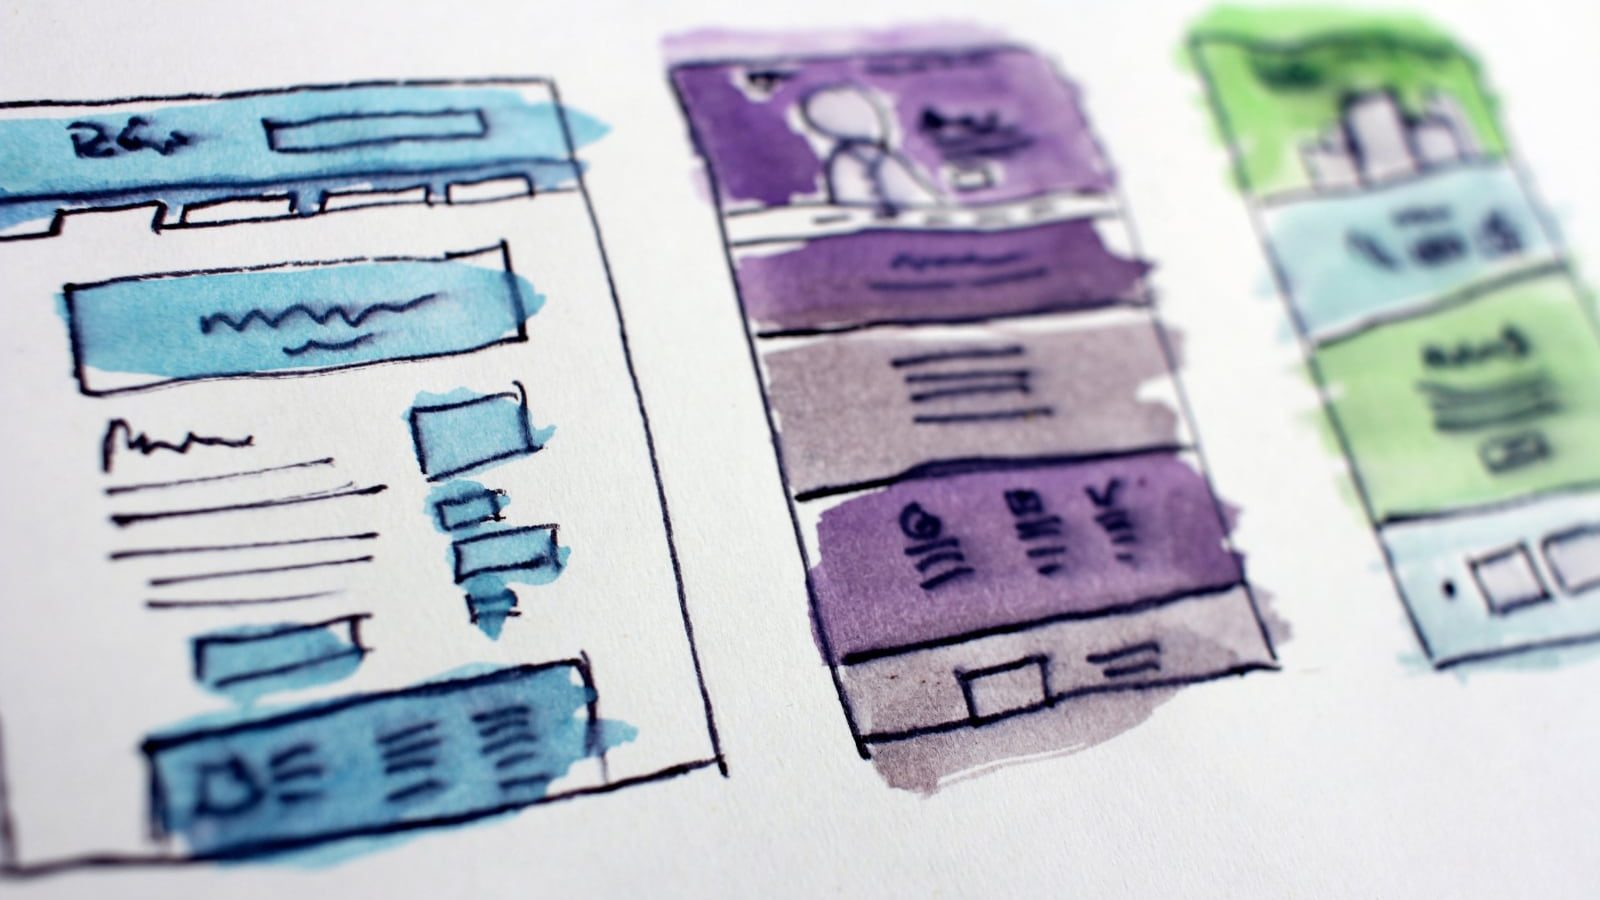 Wireframes drawings of website themes